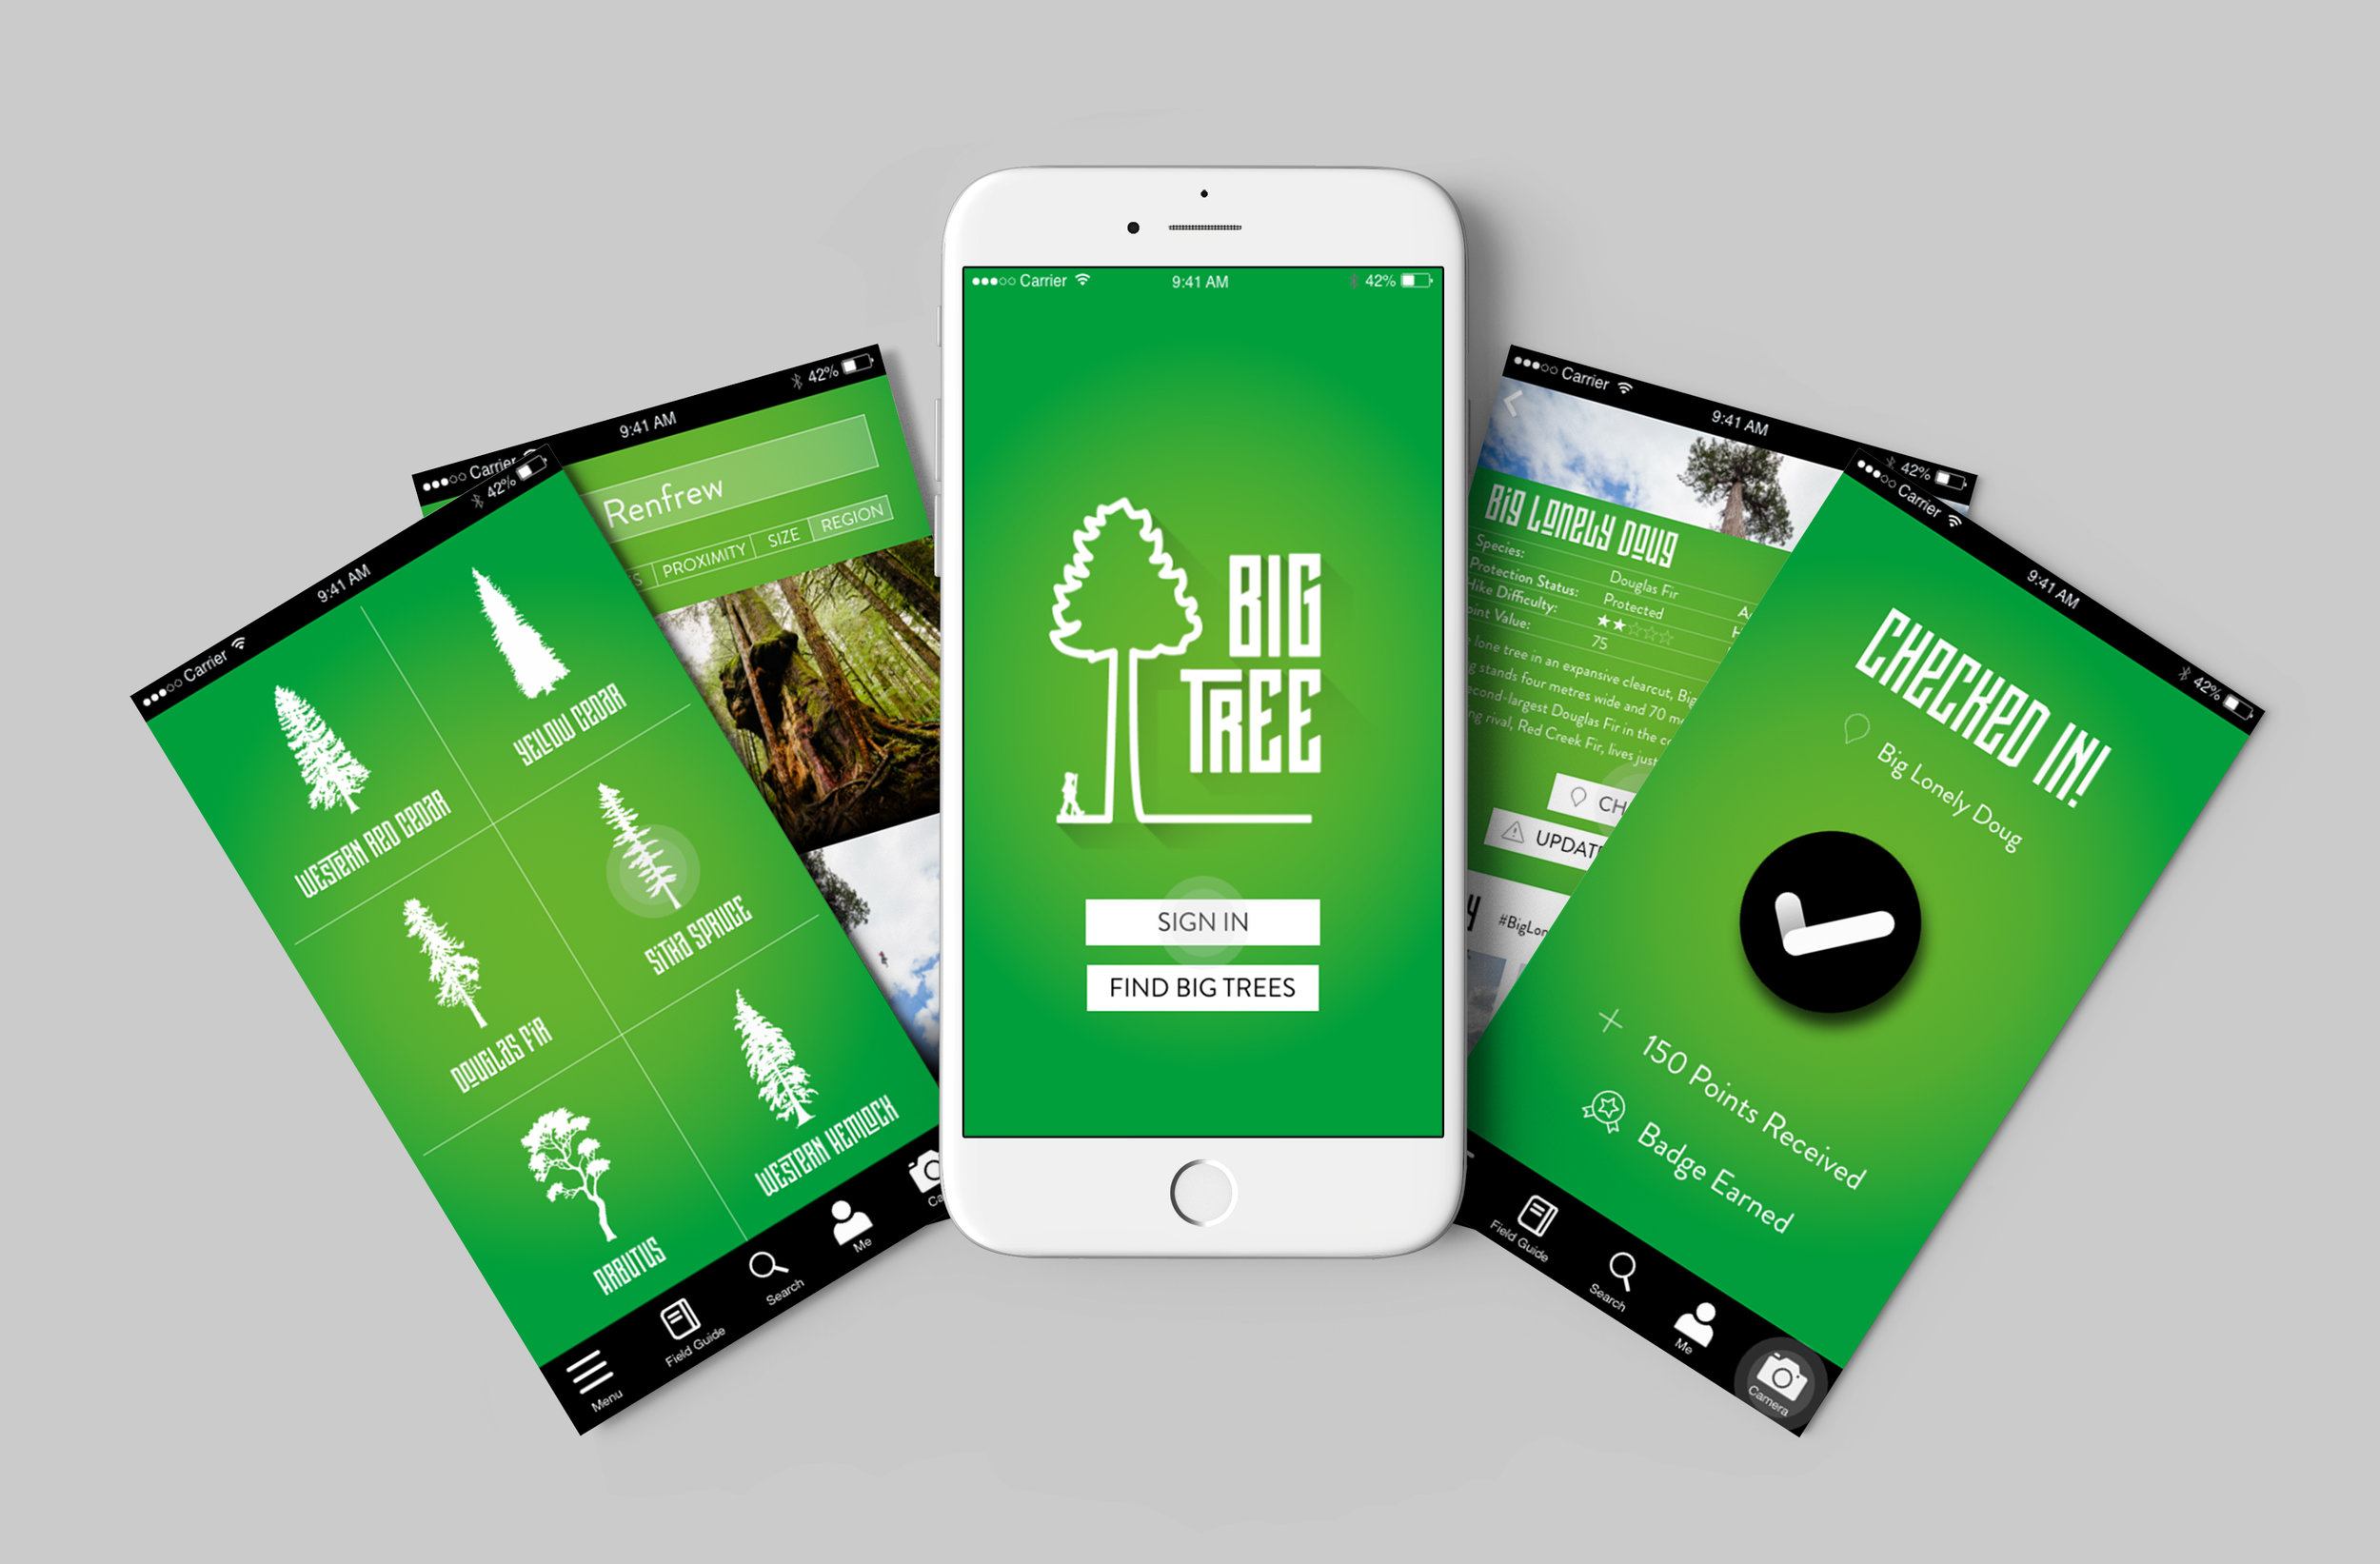 Robazzo provided a full design package for the Big Tree App, from logo, typeface and colour scheme to user interface and wireframes.